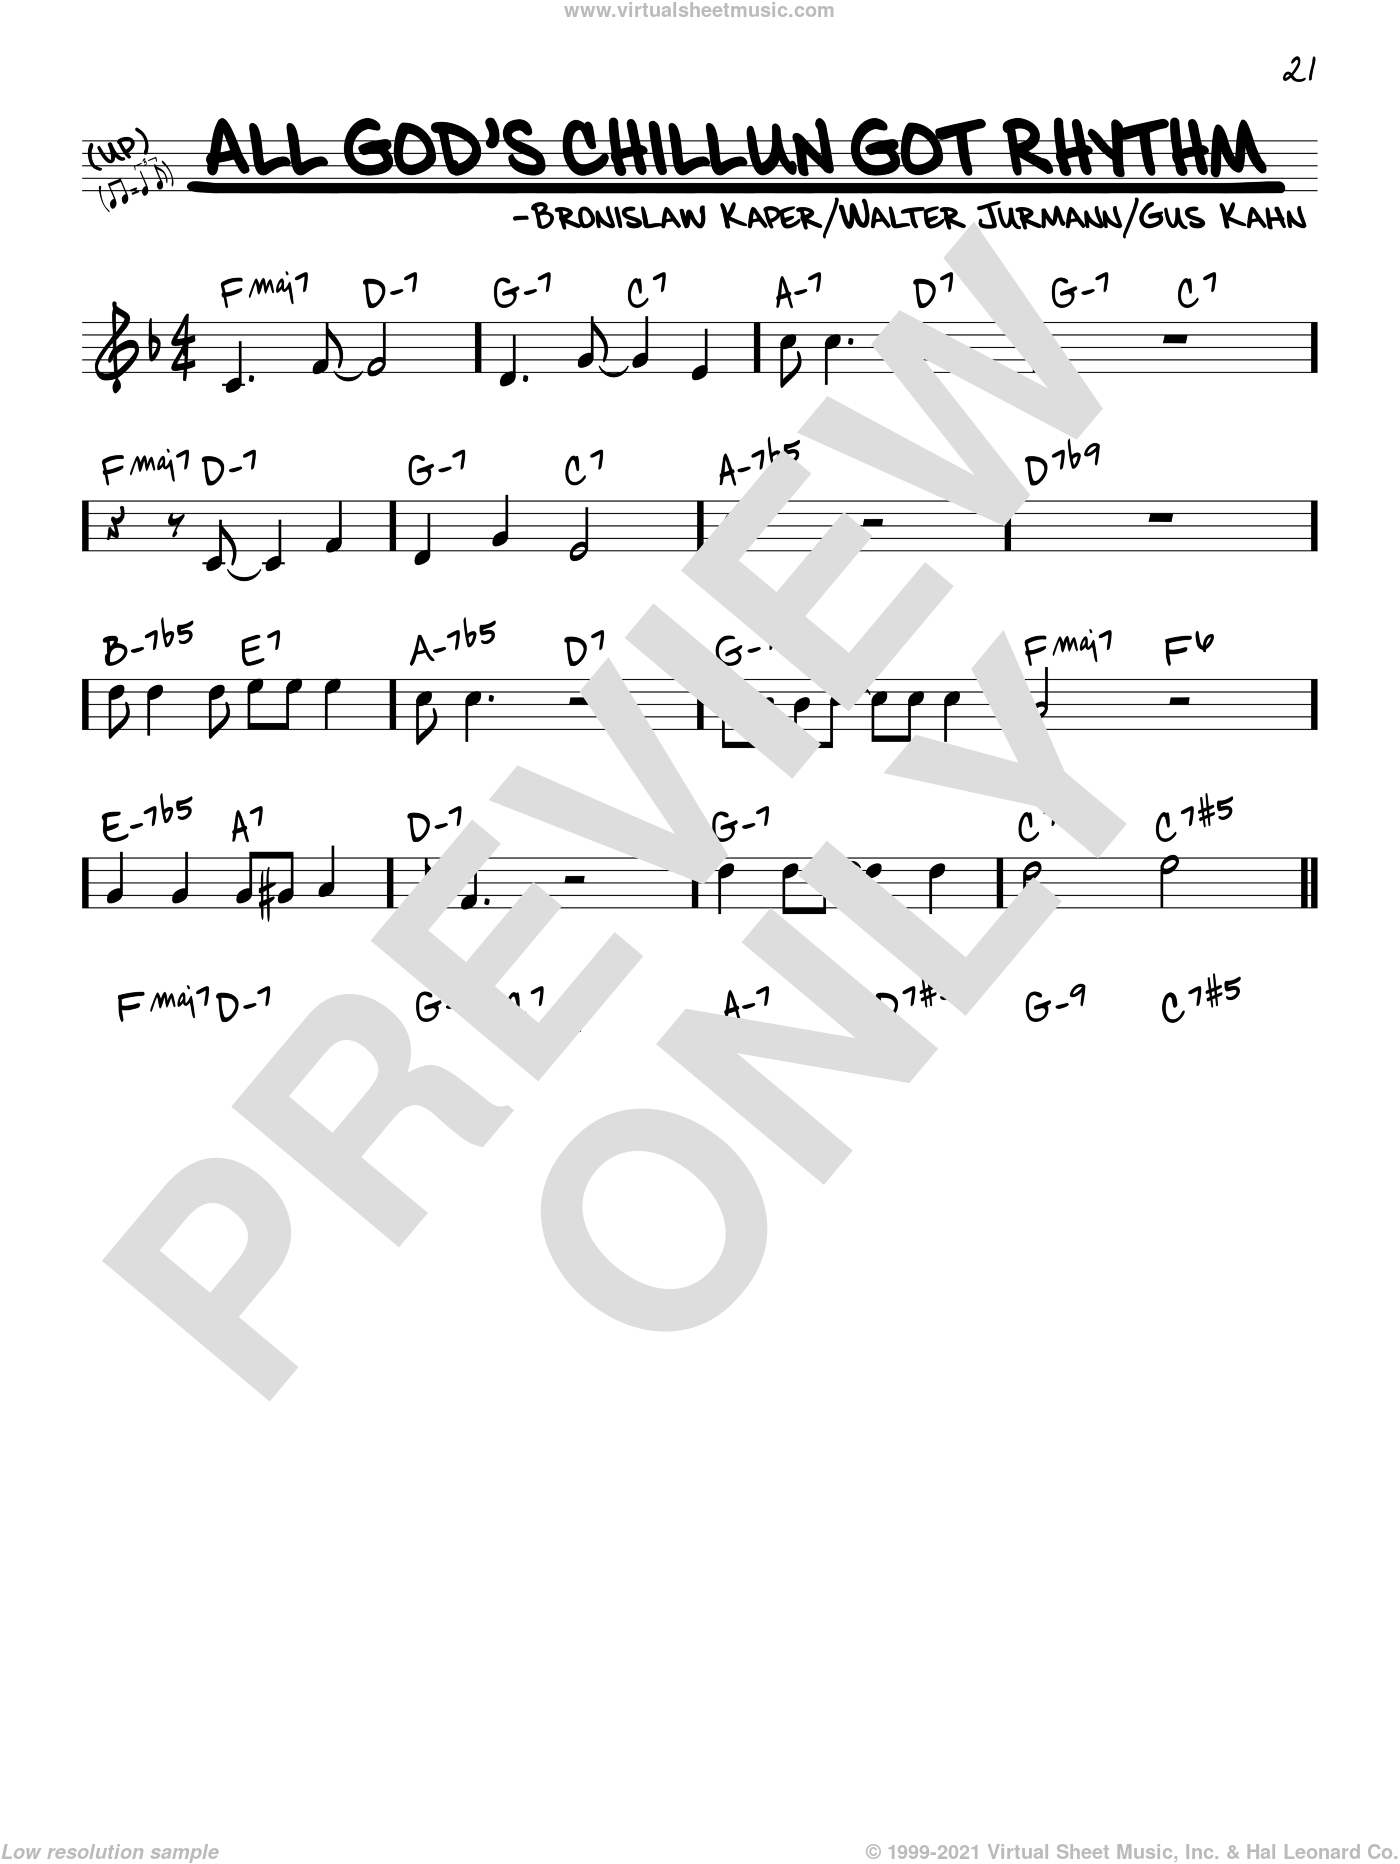 All God's Chillun Got Rhythm sheet music for voice and other instruments (real book) by Gus Kahn, Bronislau Kaper, Bronislaw Kaper and Walter Jurmann and Gus Kahn and Walter Jurmann, intermediate. Score Image Preview.